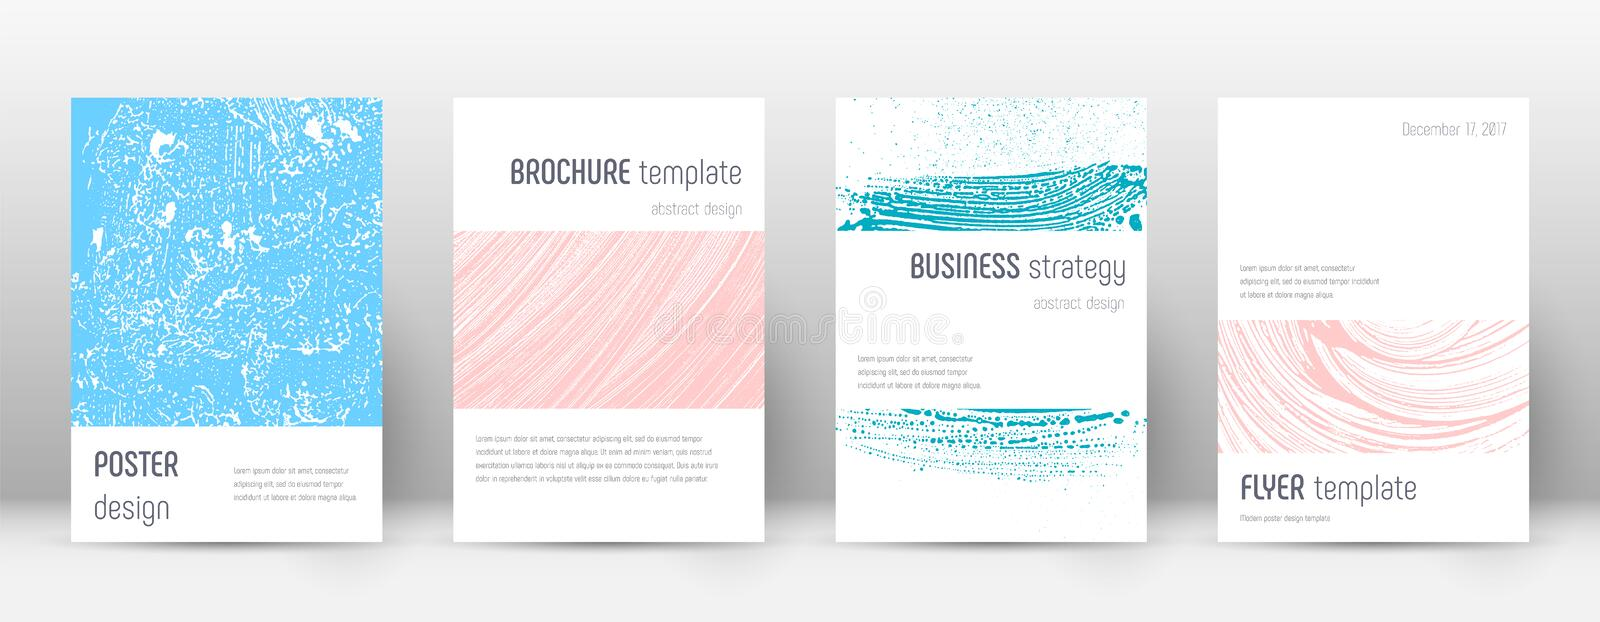 Cover page design template. Minimalistic brochure. Layout. Classy trendy abstract cover page. Pink and blue grunge texture background. Enchanting poster royalty free illustration